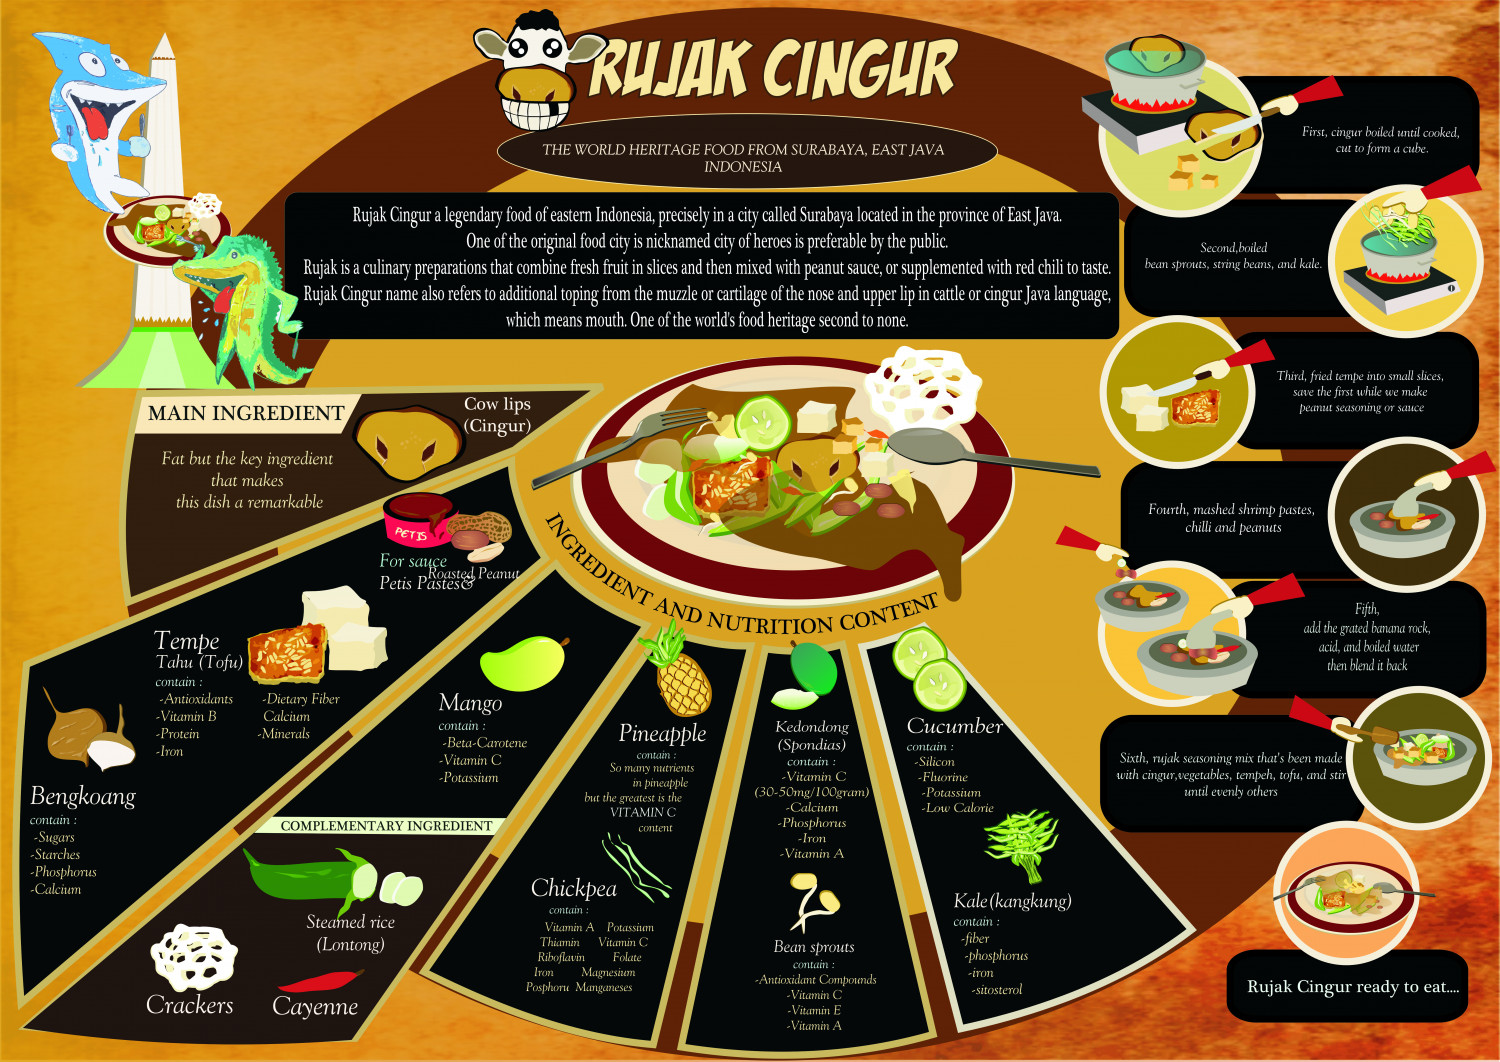 Rujak Cingur (The world heritage food from Java) Infographic